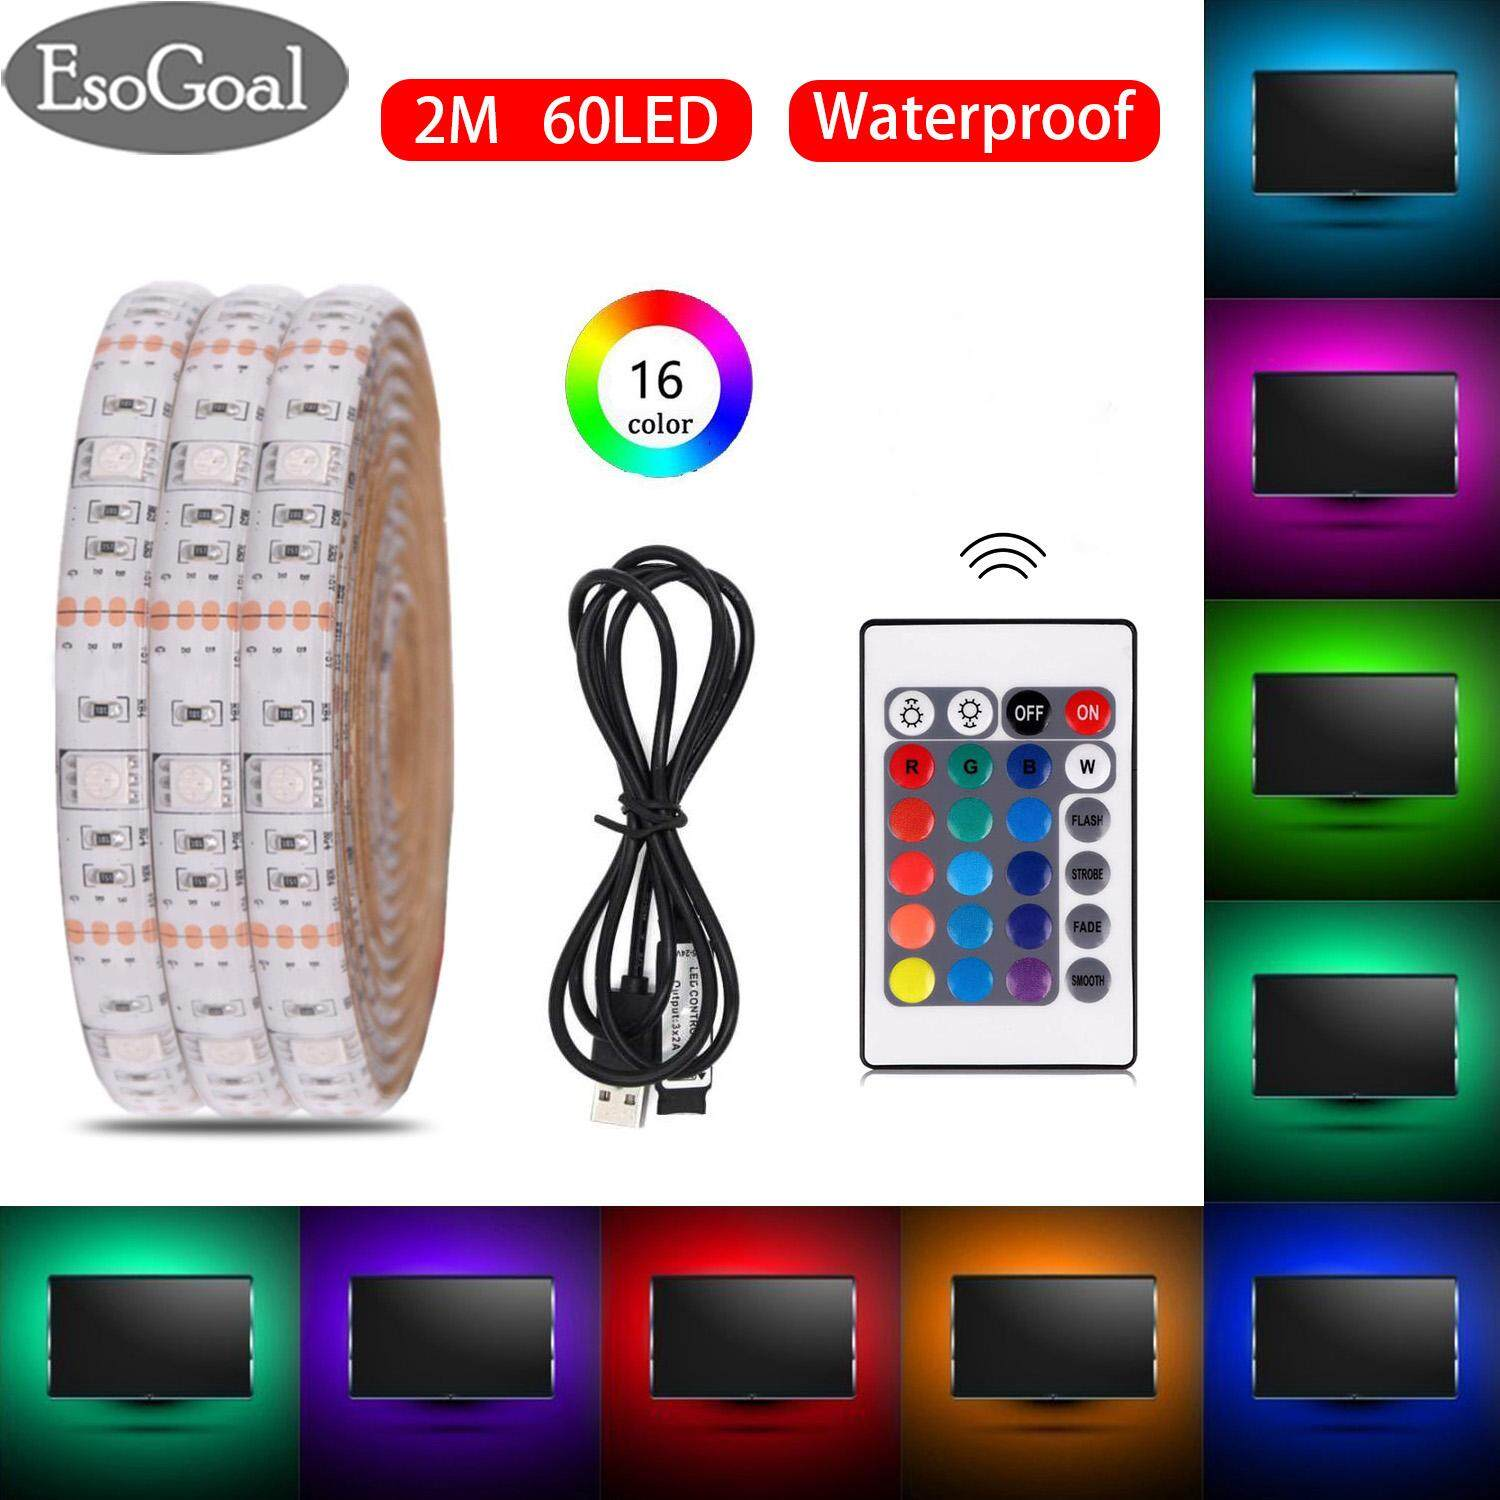 Led Lighting Prices Esogoal Usb Led Strip Light Rgb Waterproof Portable 5050 2m Led Tv Backlight Ip65 60leds Usb Powered Strip With 24keys Remote Controller